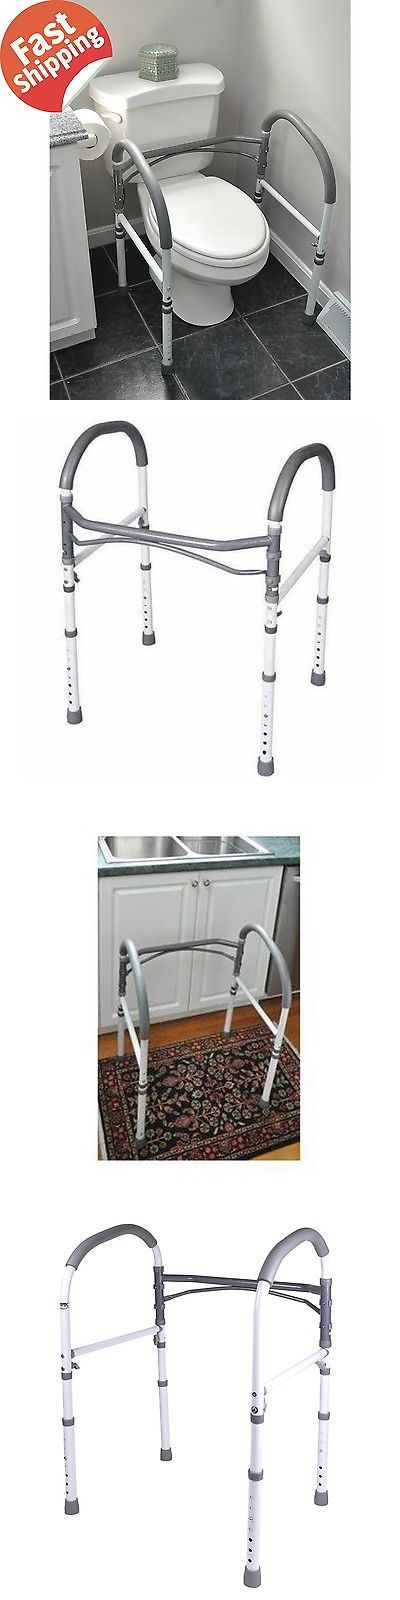 Other Accessibility Fixtures: Handicap Toilet Rails Bathroom Safety Equipment Aid Support Health Grab Mobility BUY IT NOW ONLY: $85.4